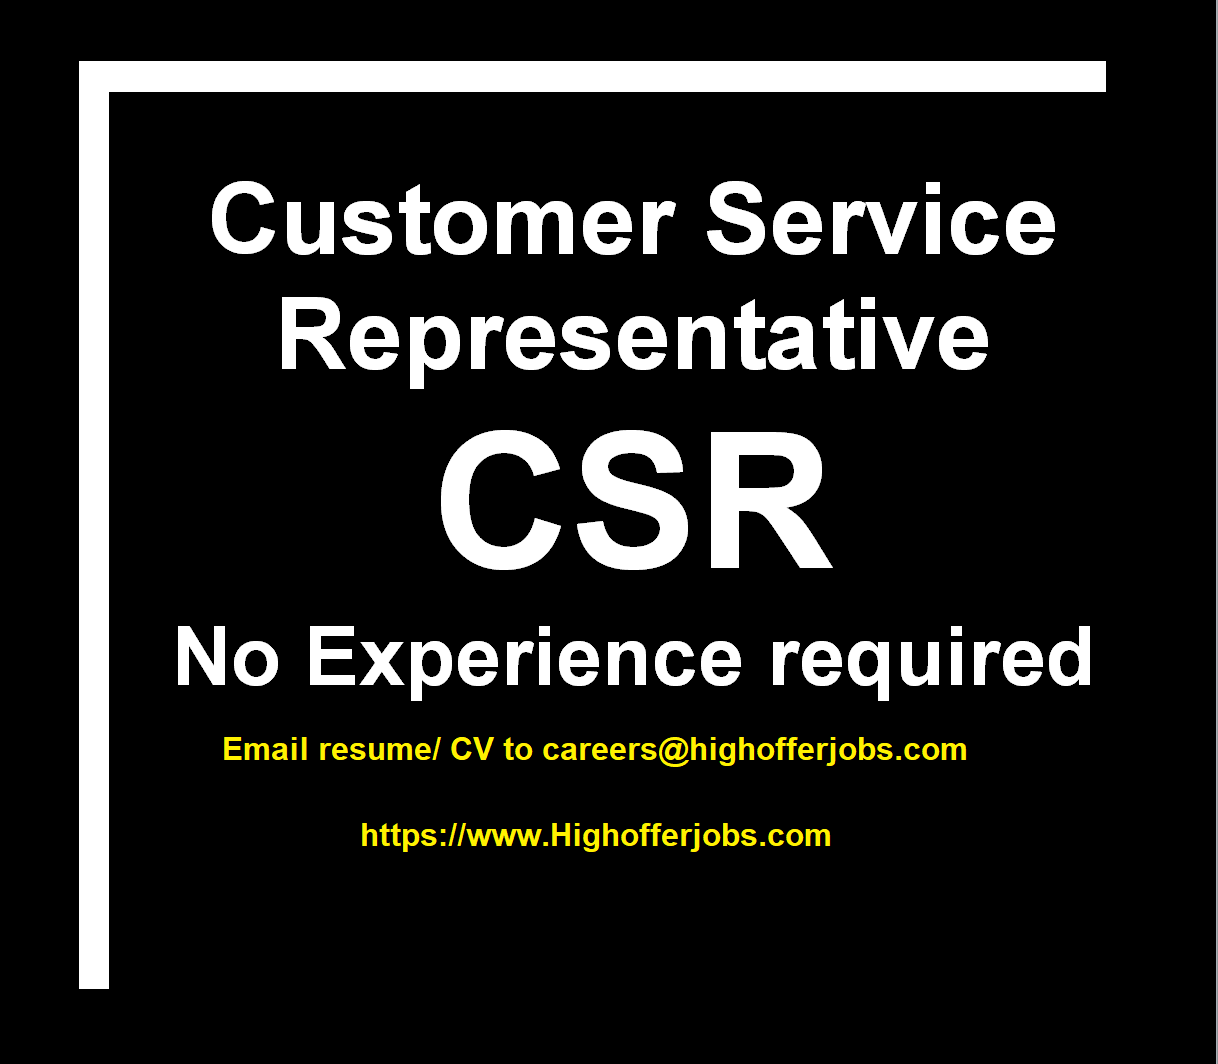 Customer Service Representative (CSR) with or without experience - START ASAP!